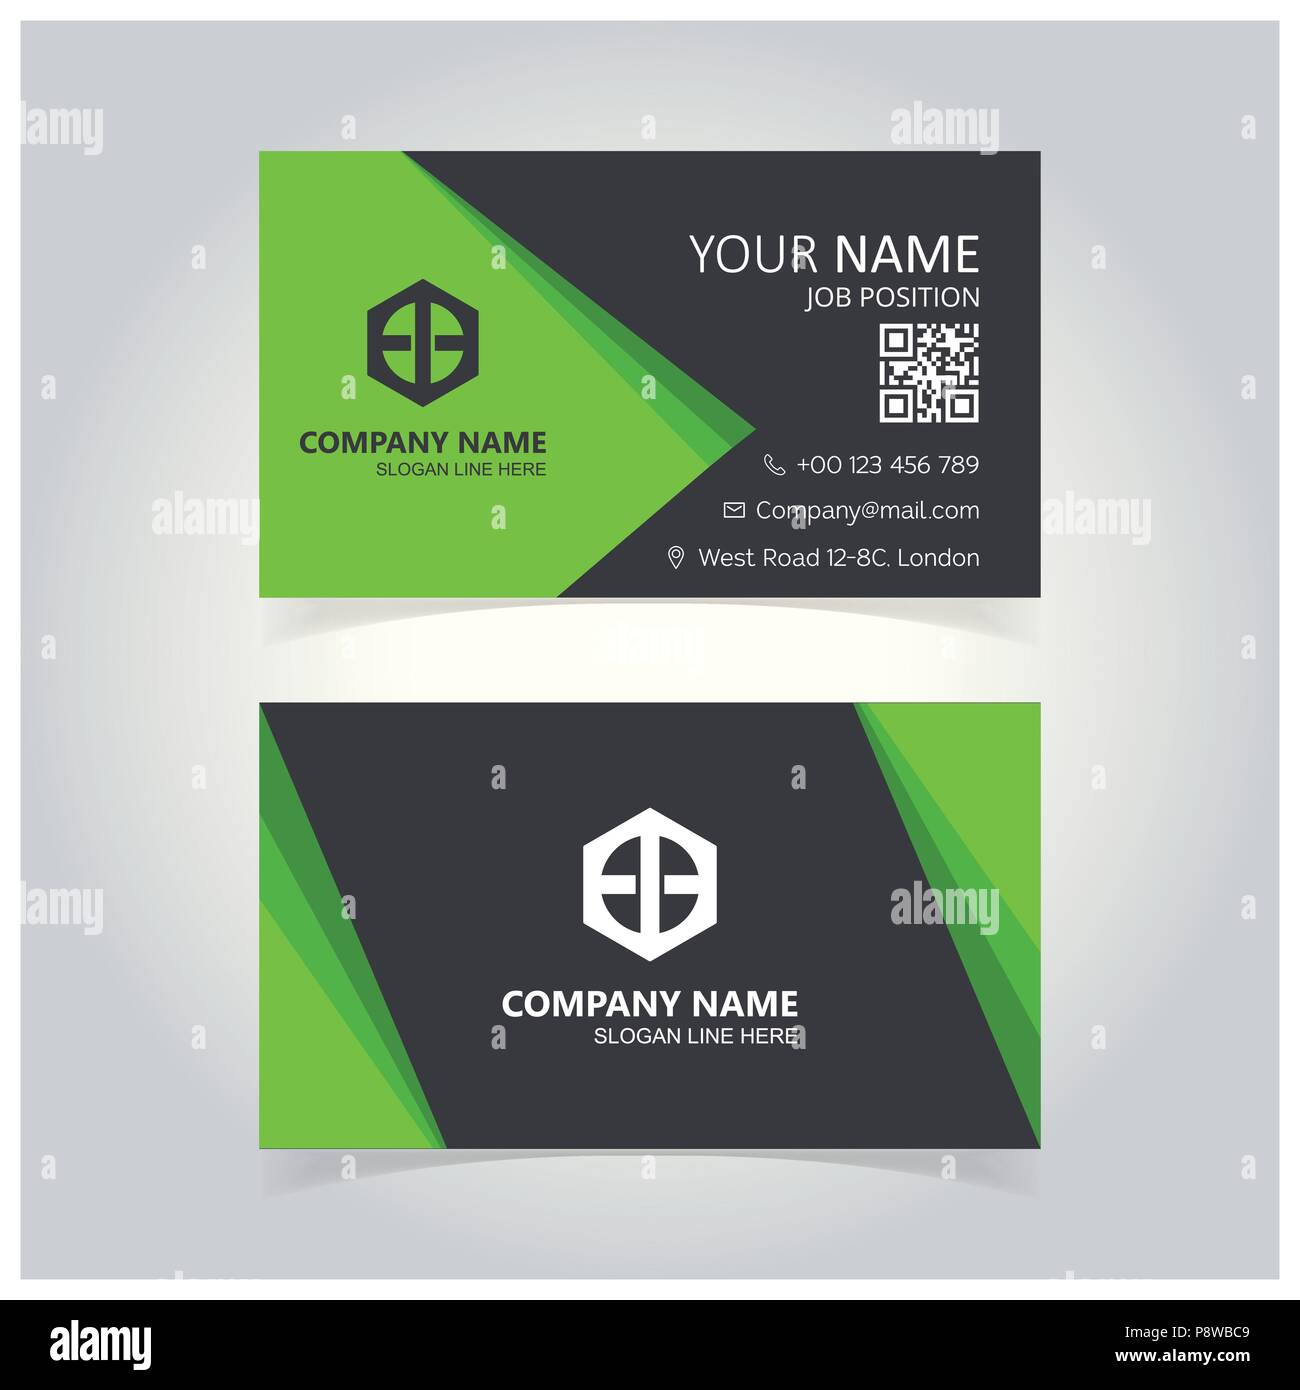 Green And Gray Creative Business Card Template For Web